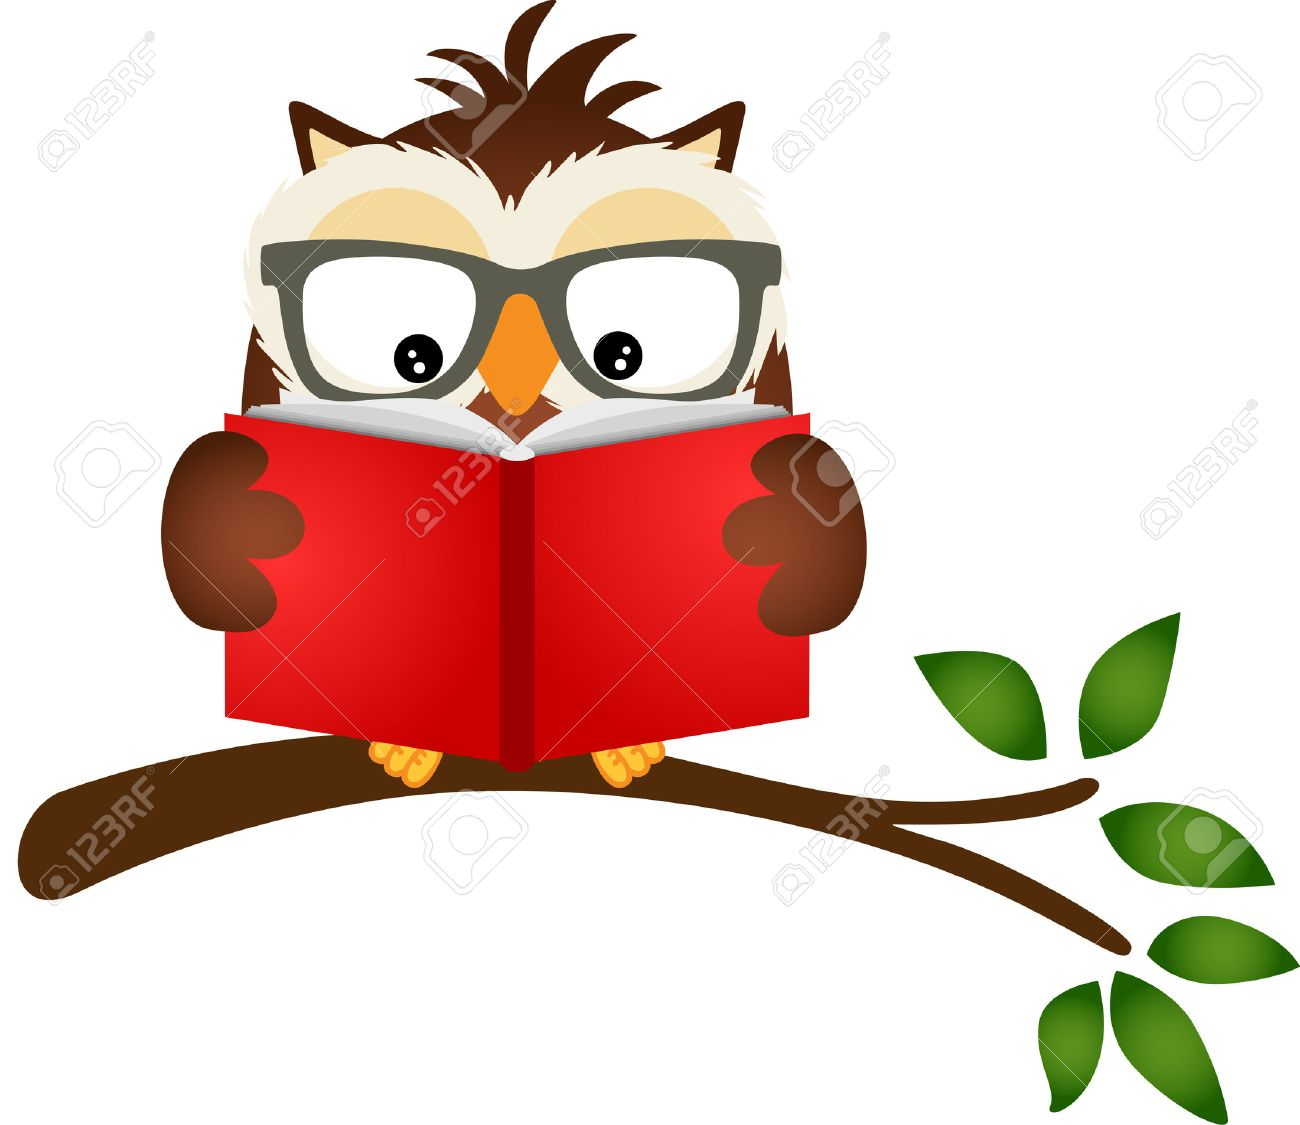 owl reading a book on tree branch royalty free cliparts vectors rh 123rf com